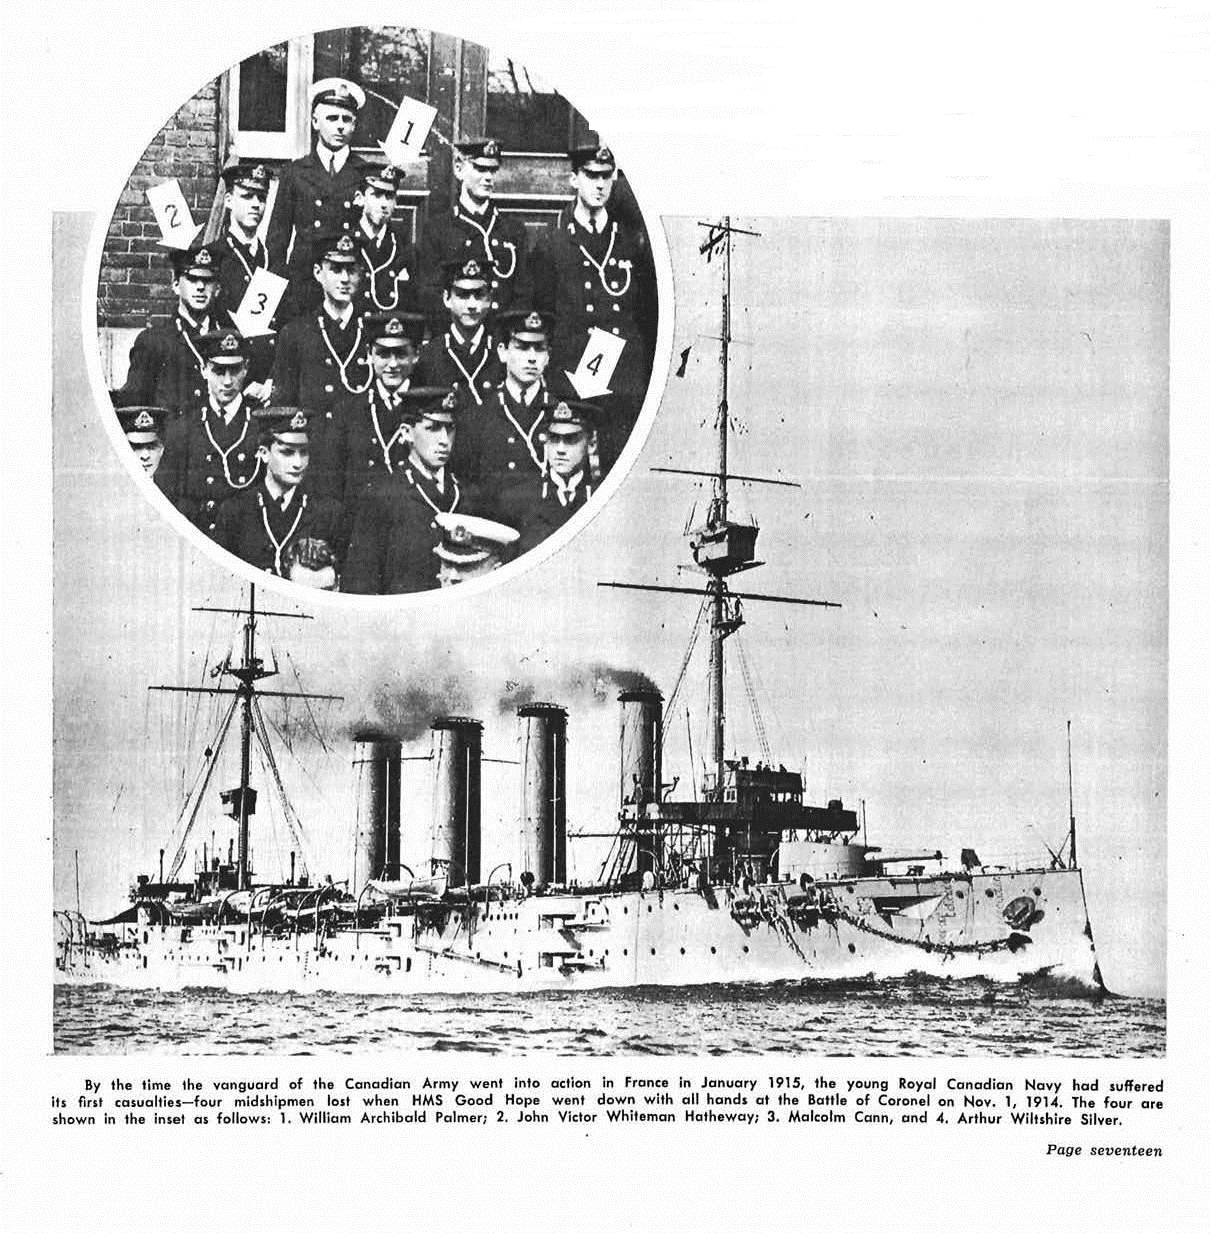 Newspaper Clipping– This display of images appeared at page 17 in the November 1964 issue of The Crowsnest, the Royal Canadian Navy's magazine.  (Submitted by Navy League Cadet Corps CHAMBLY, Barrie, Ontario.)